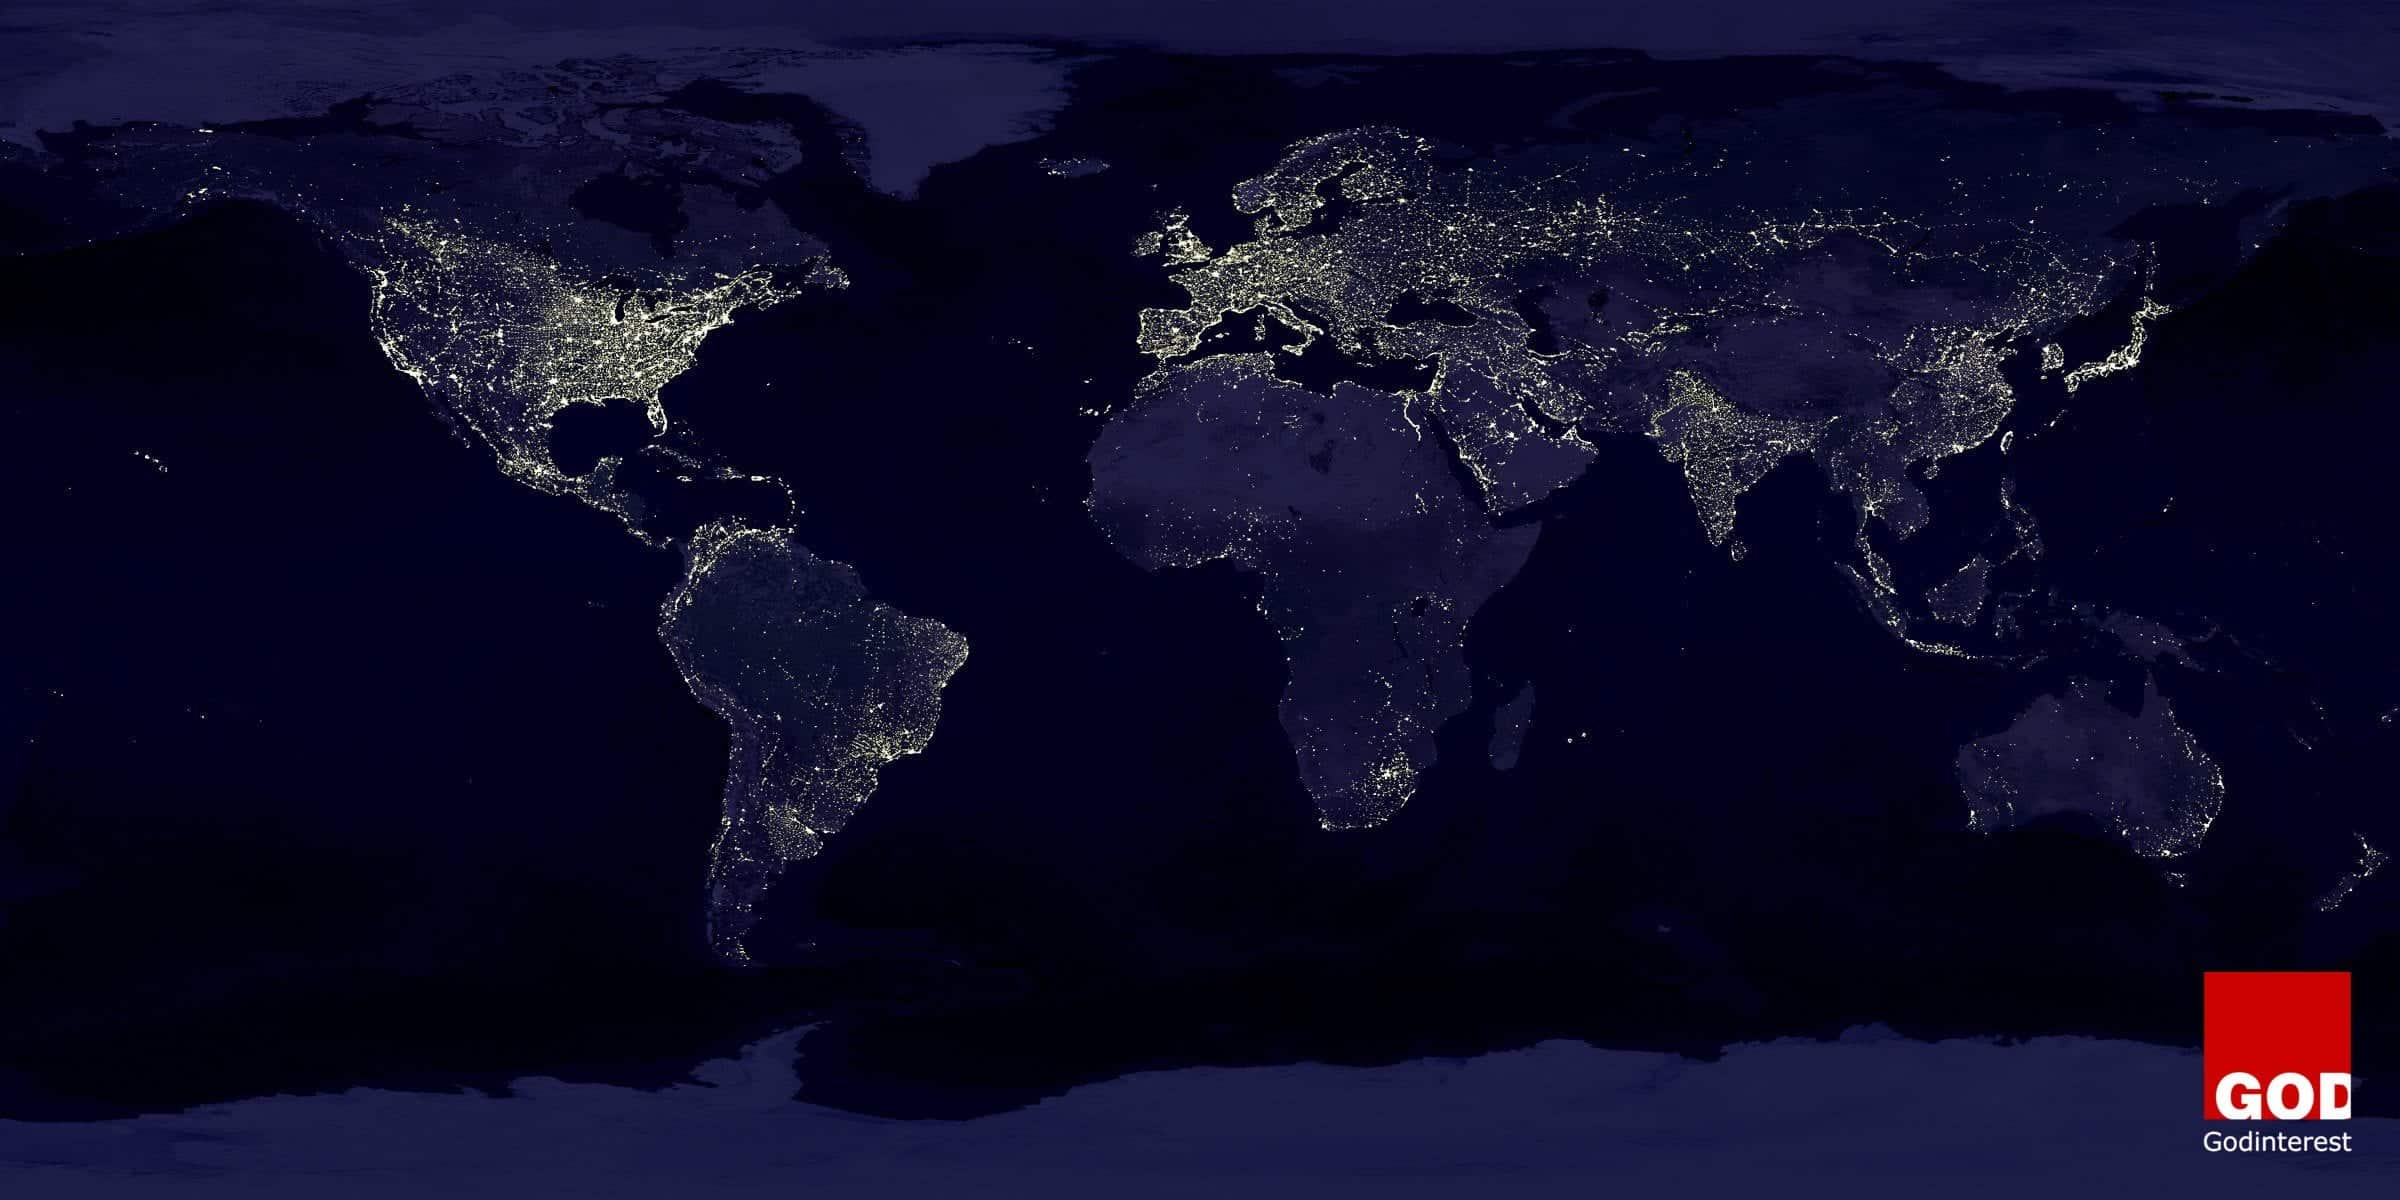 View of Earth at Night from Space